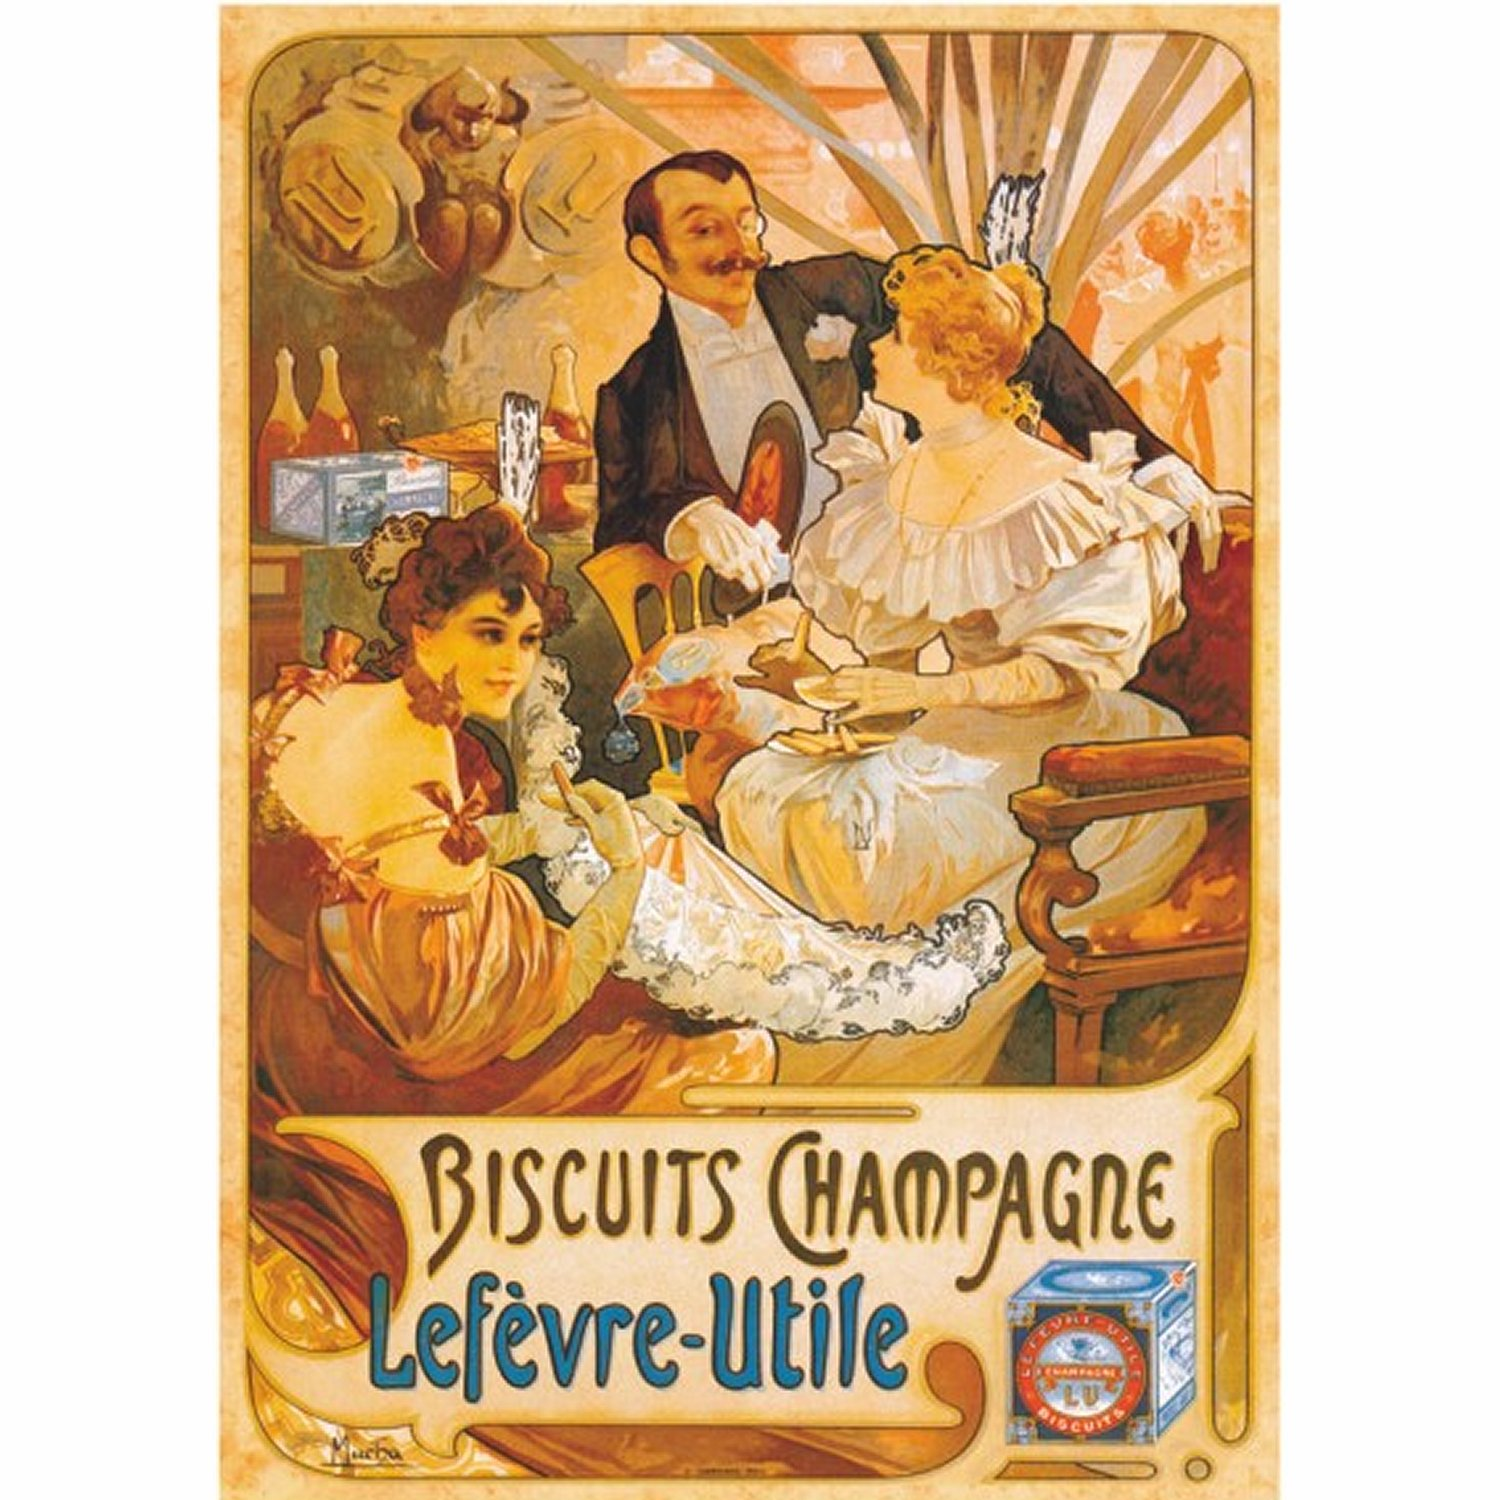 dtoys-vintage-posters-biscuits-champagne-lefevre-utile-1000-teile-puzzle-dtoys-69603